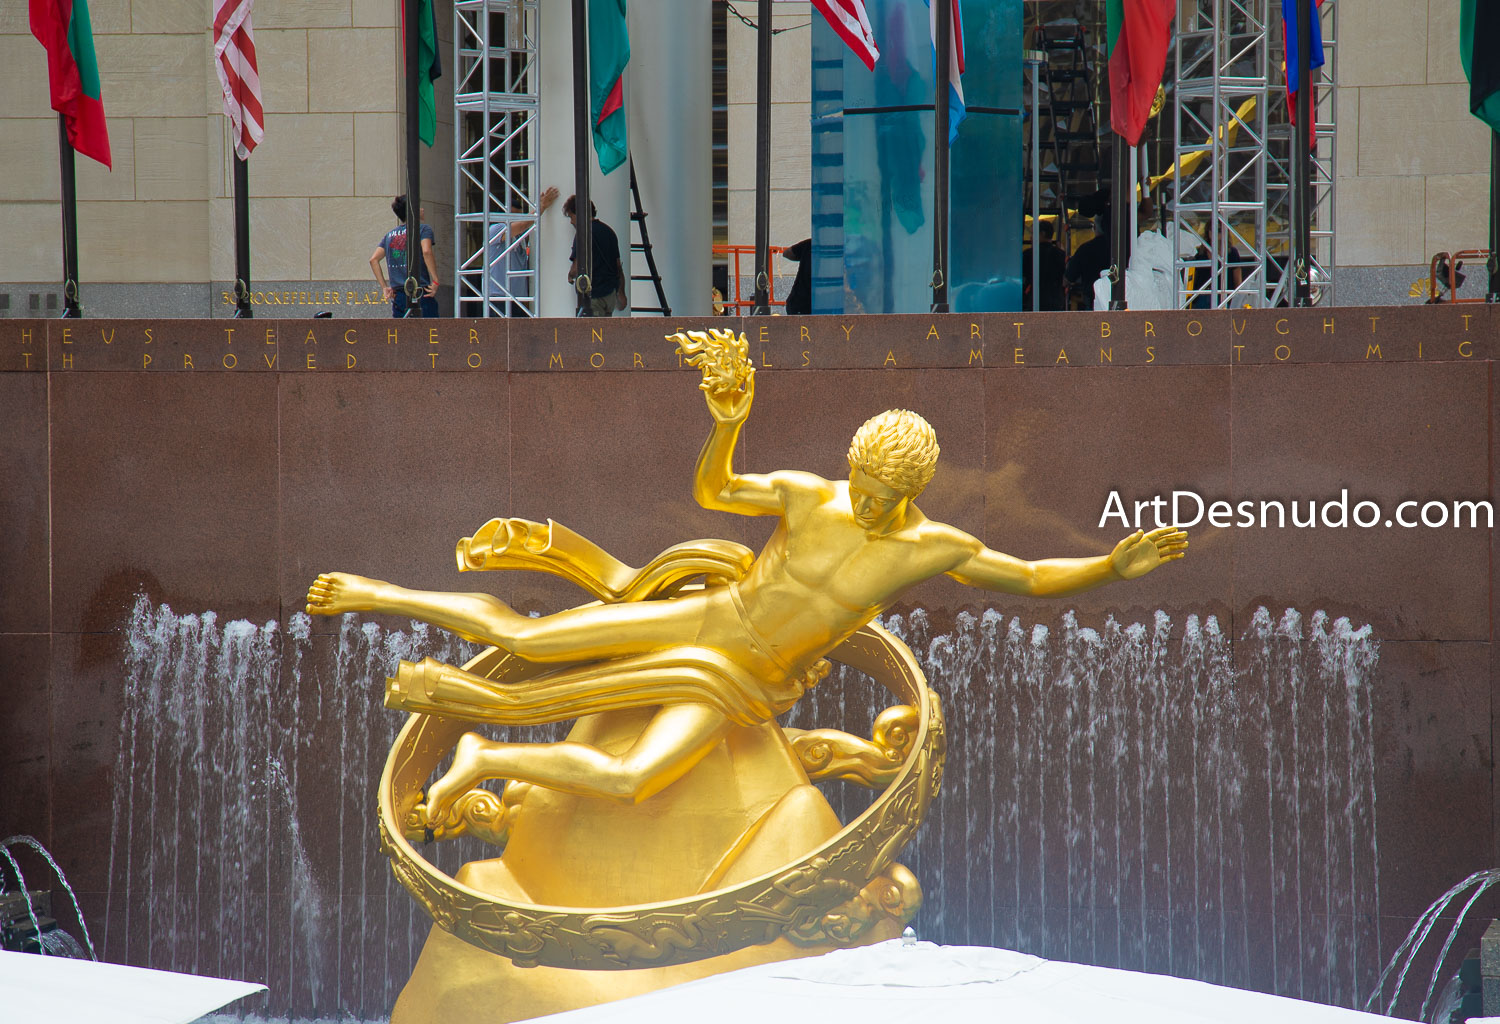 Wednesday, September 4, 2019 - Prometheus. Rockefeller Center. Manhattan, New York City.